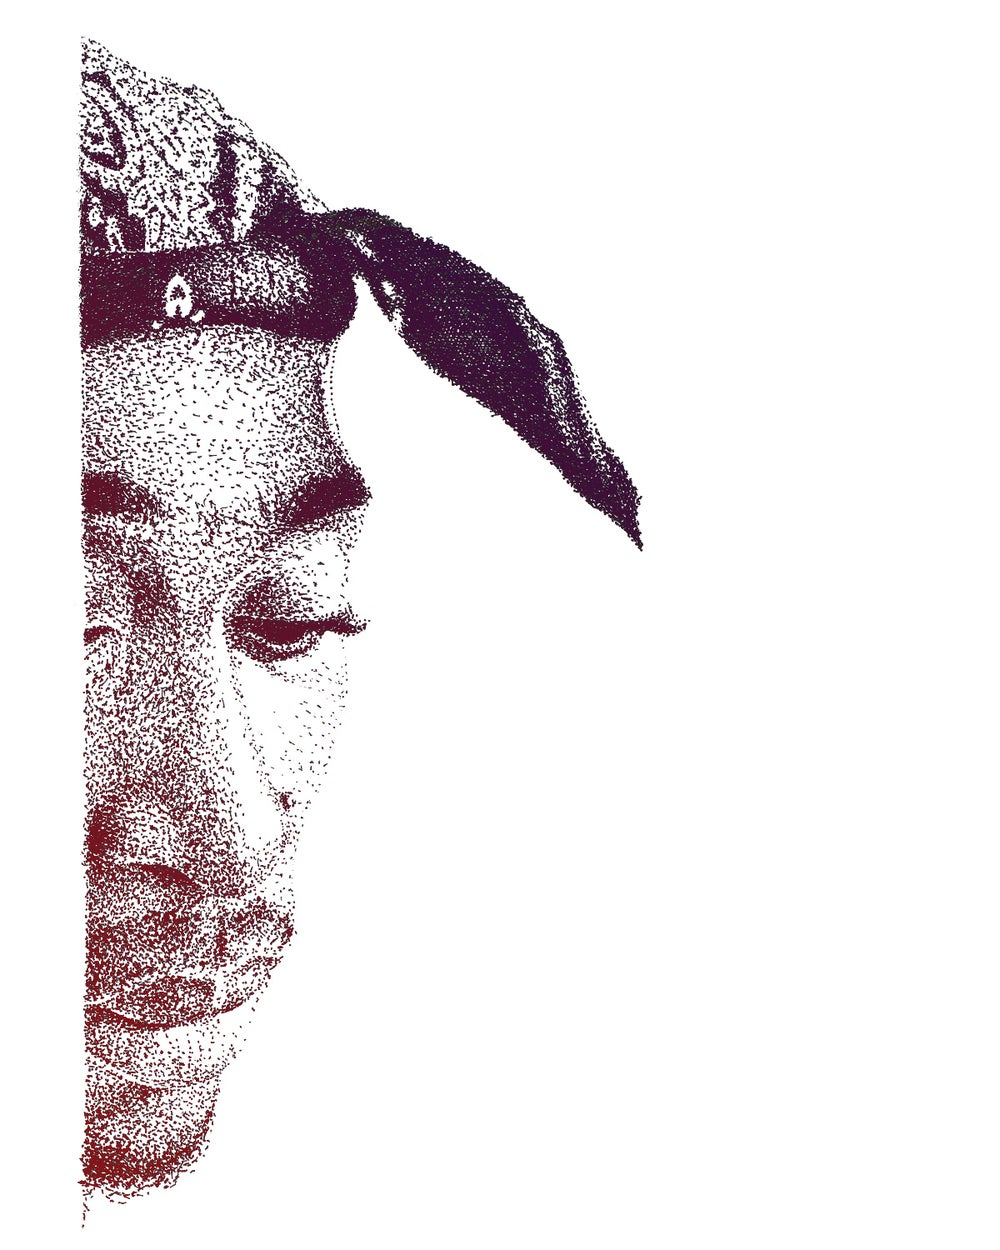 2Pac (With or w/o text)